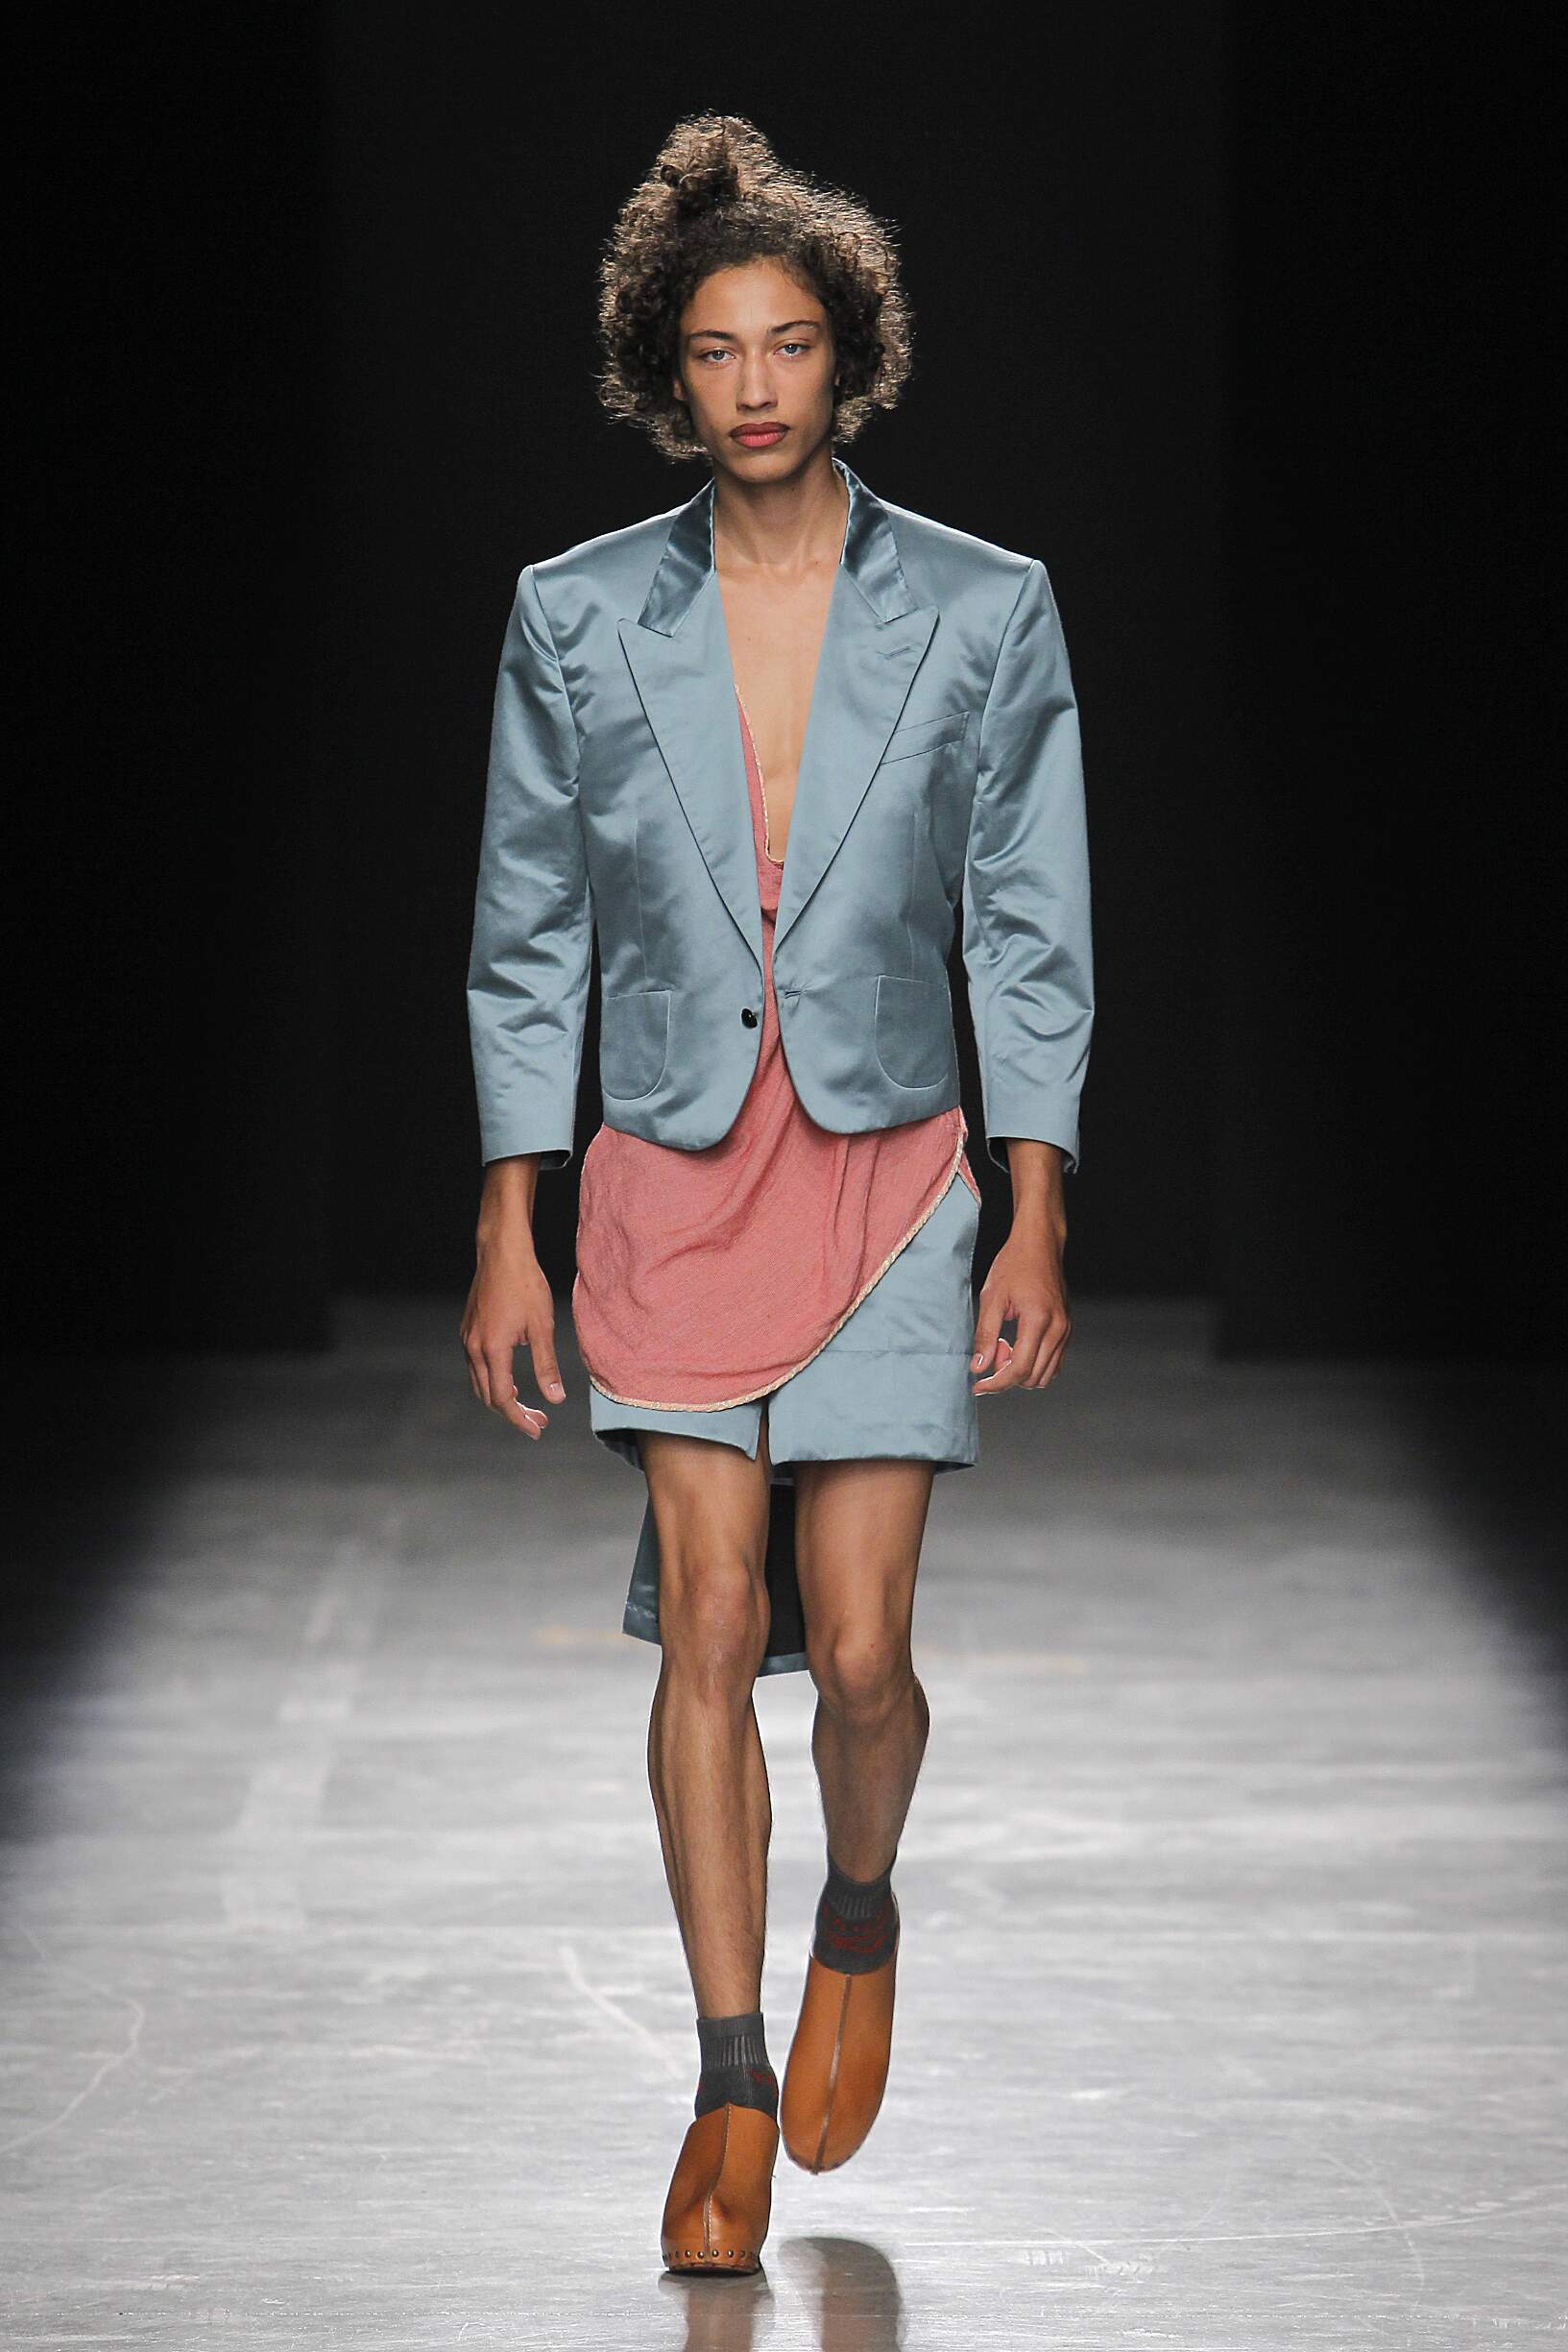 Fashion 2017 Catwalk Andreas Kronthaler for Vivienne Westwood Summer Mens Collection